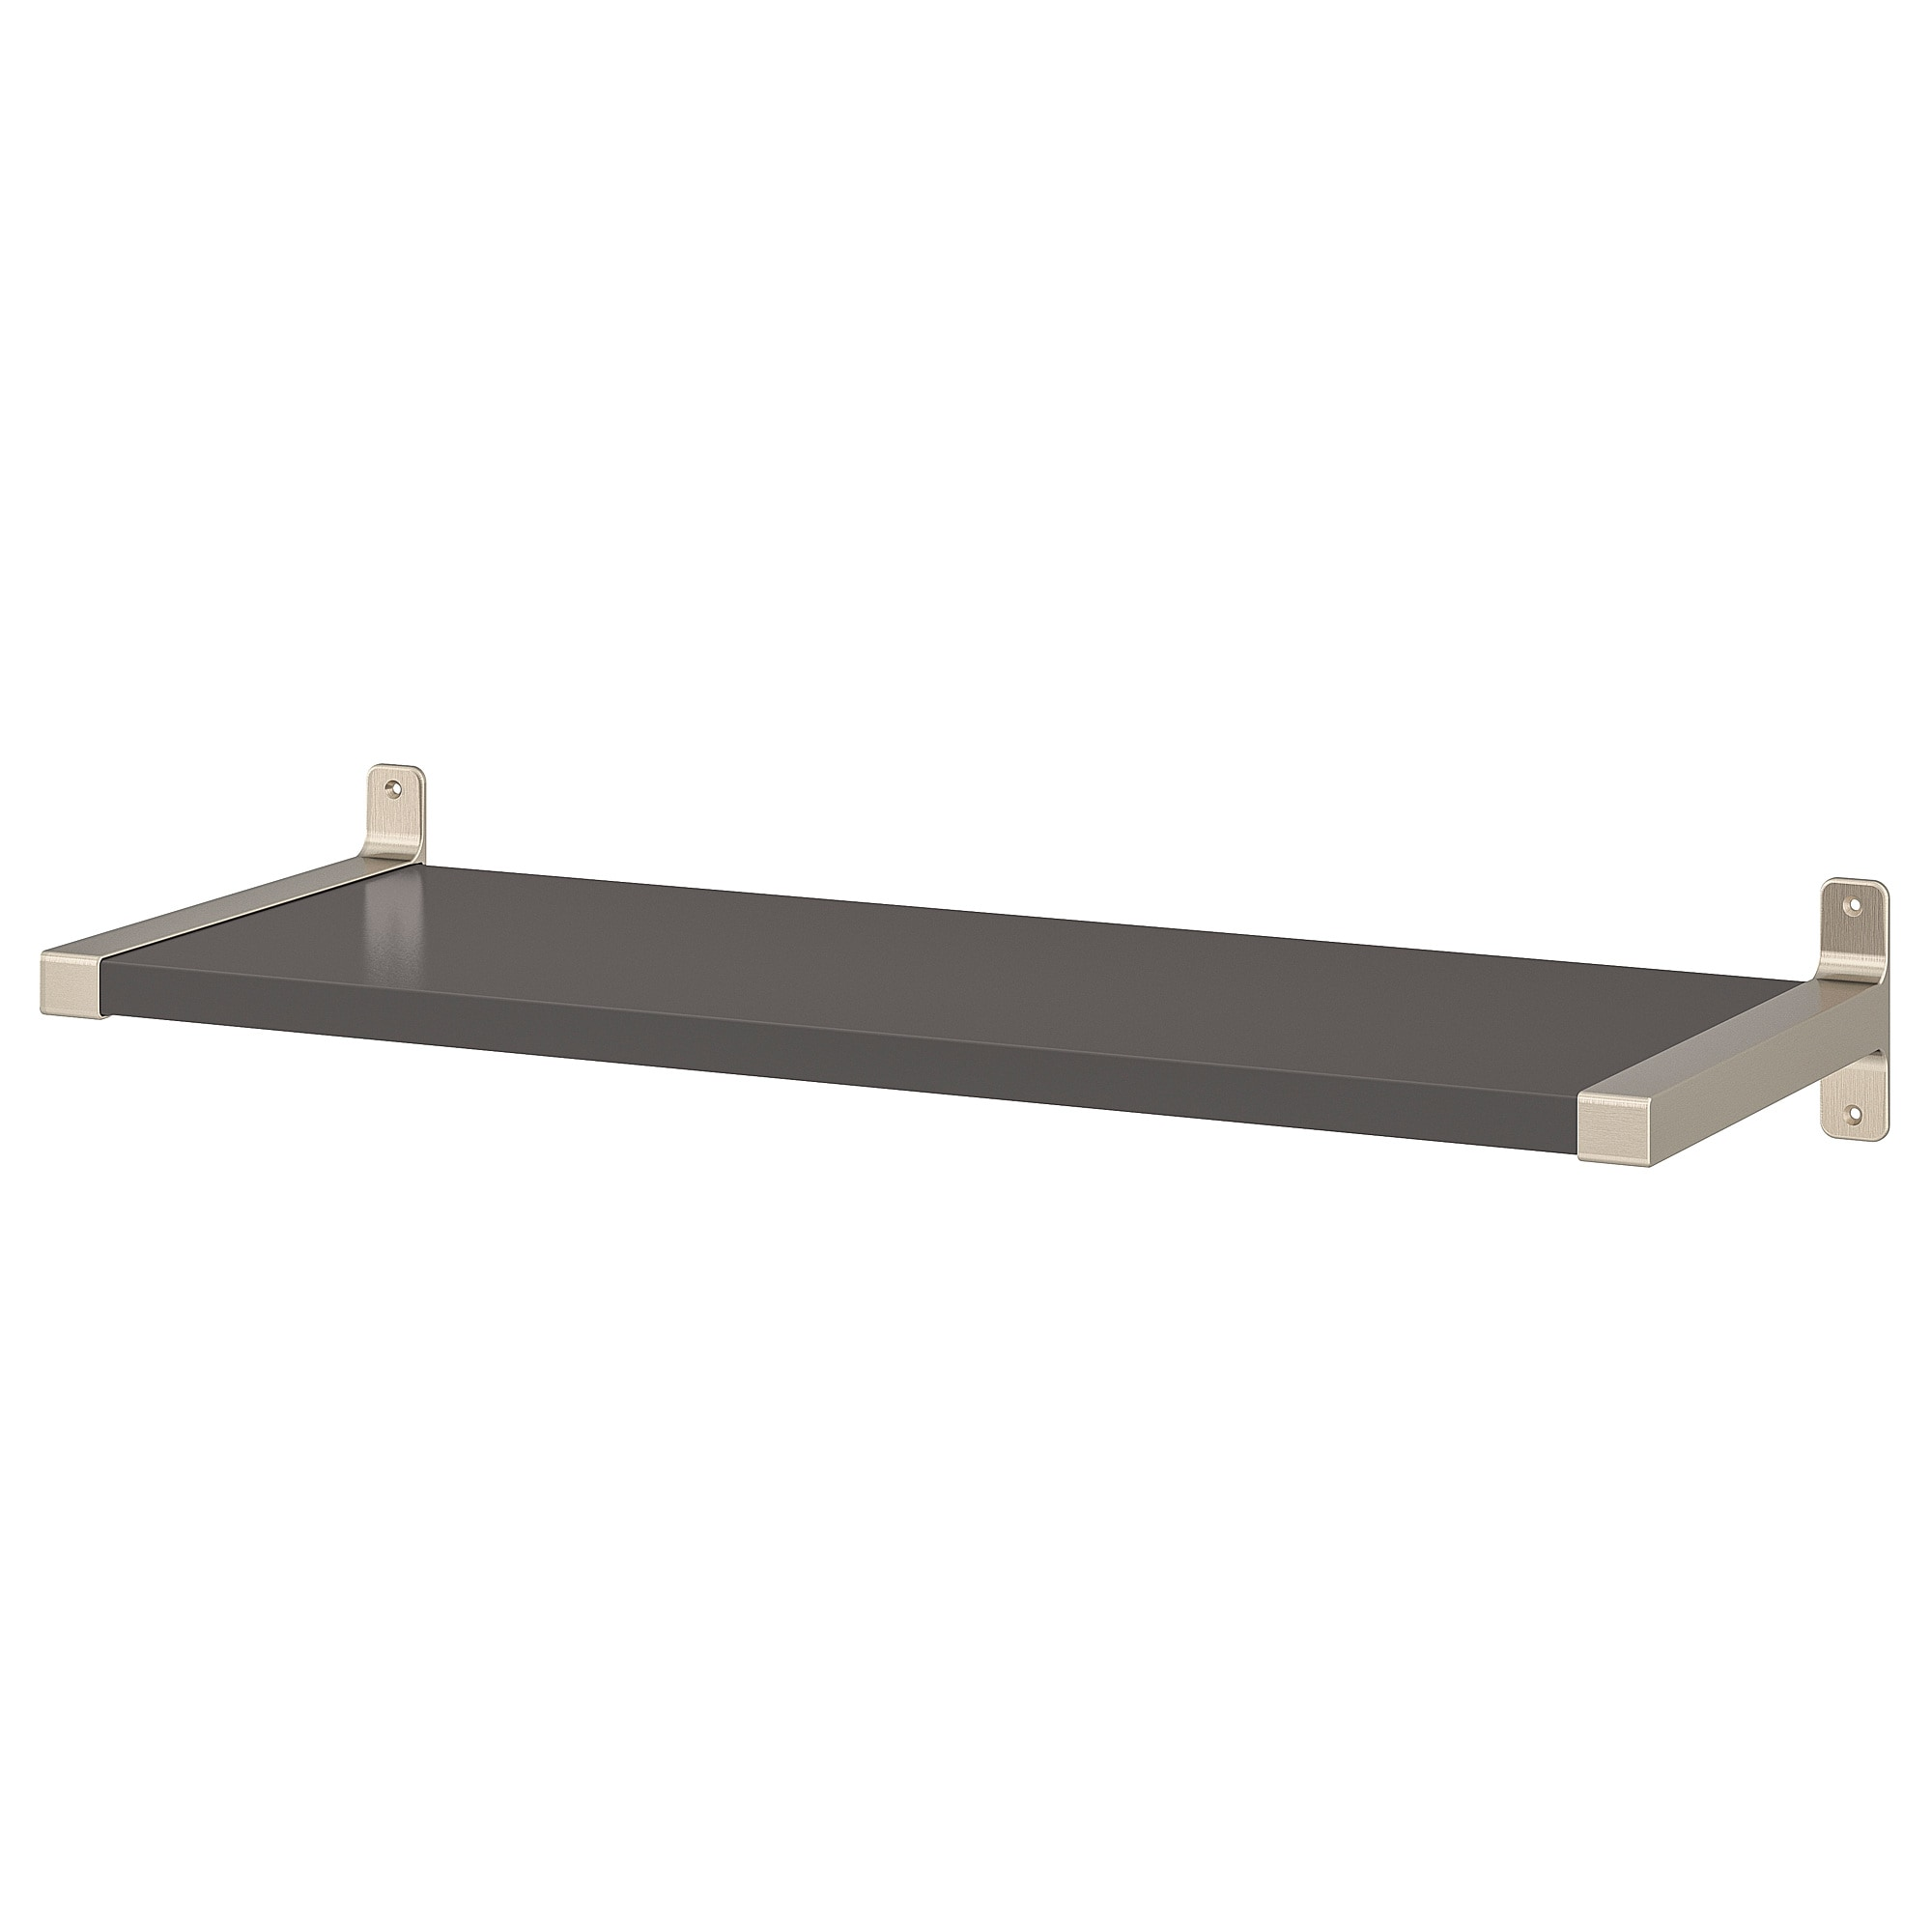 floating shelves wall shelf brackets ikea granhult bergshult dark grey nickel plated black depth metal shelving with wood wooden garage units kitchen hanging lack red without inch